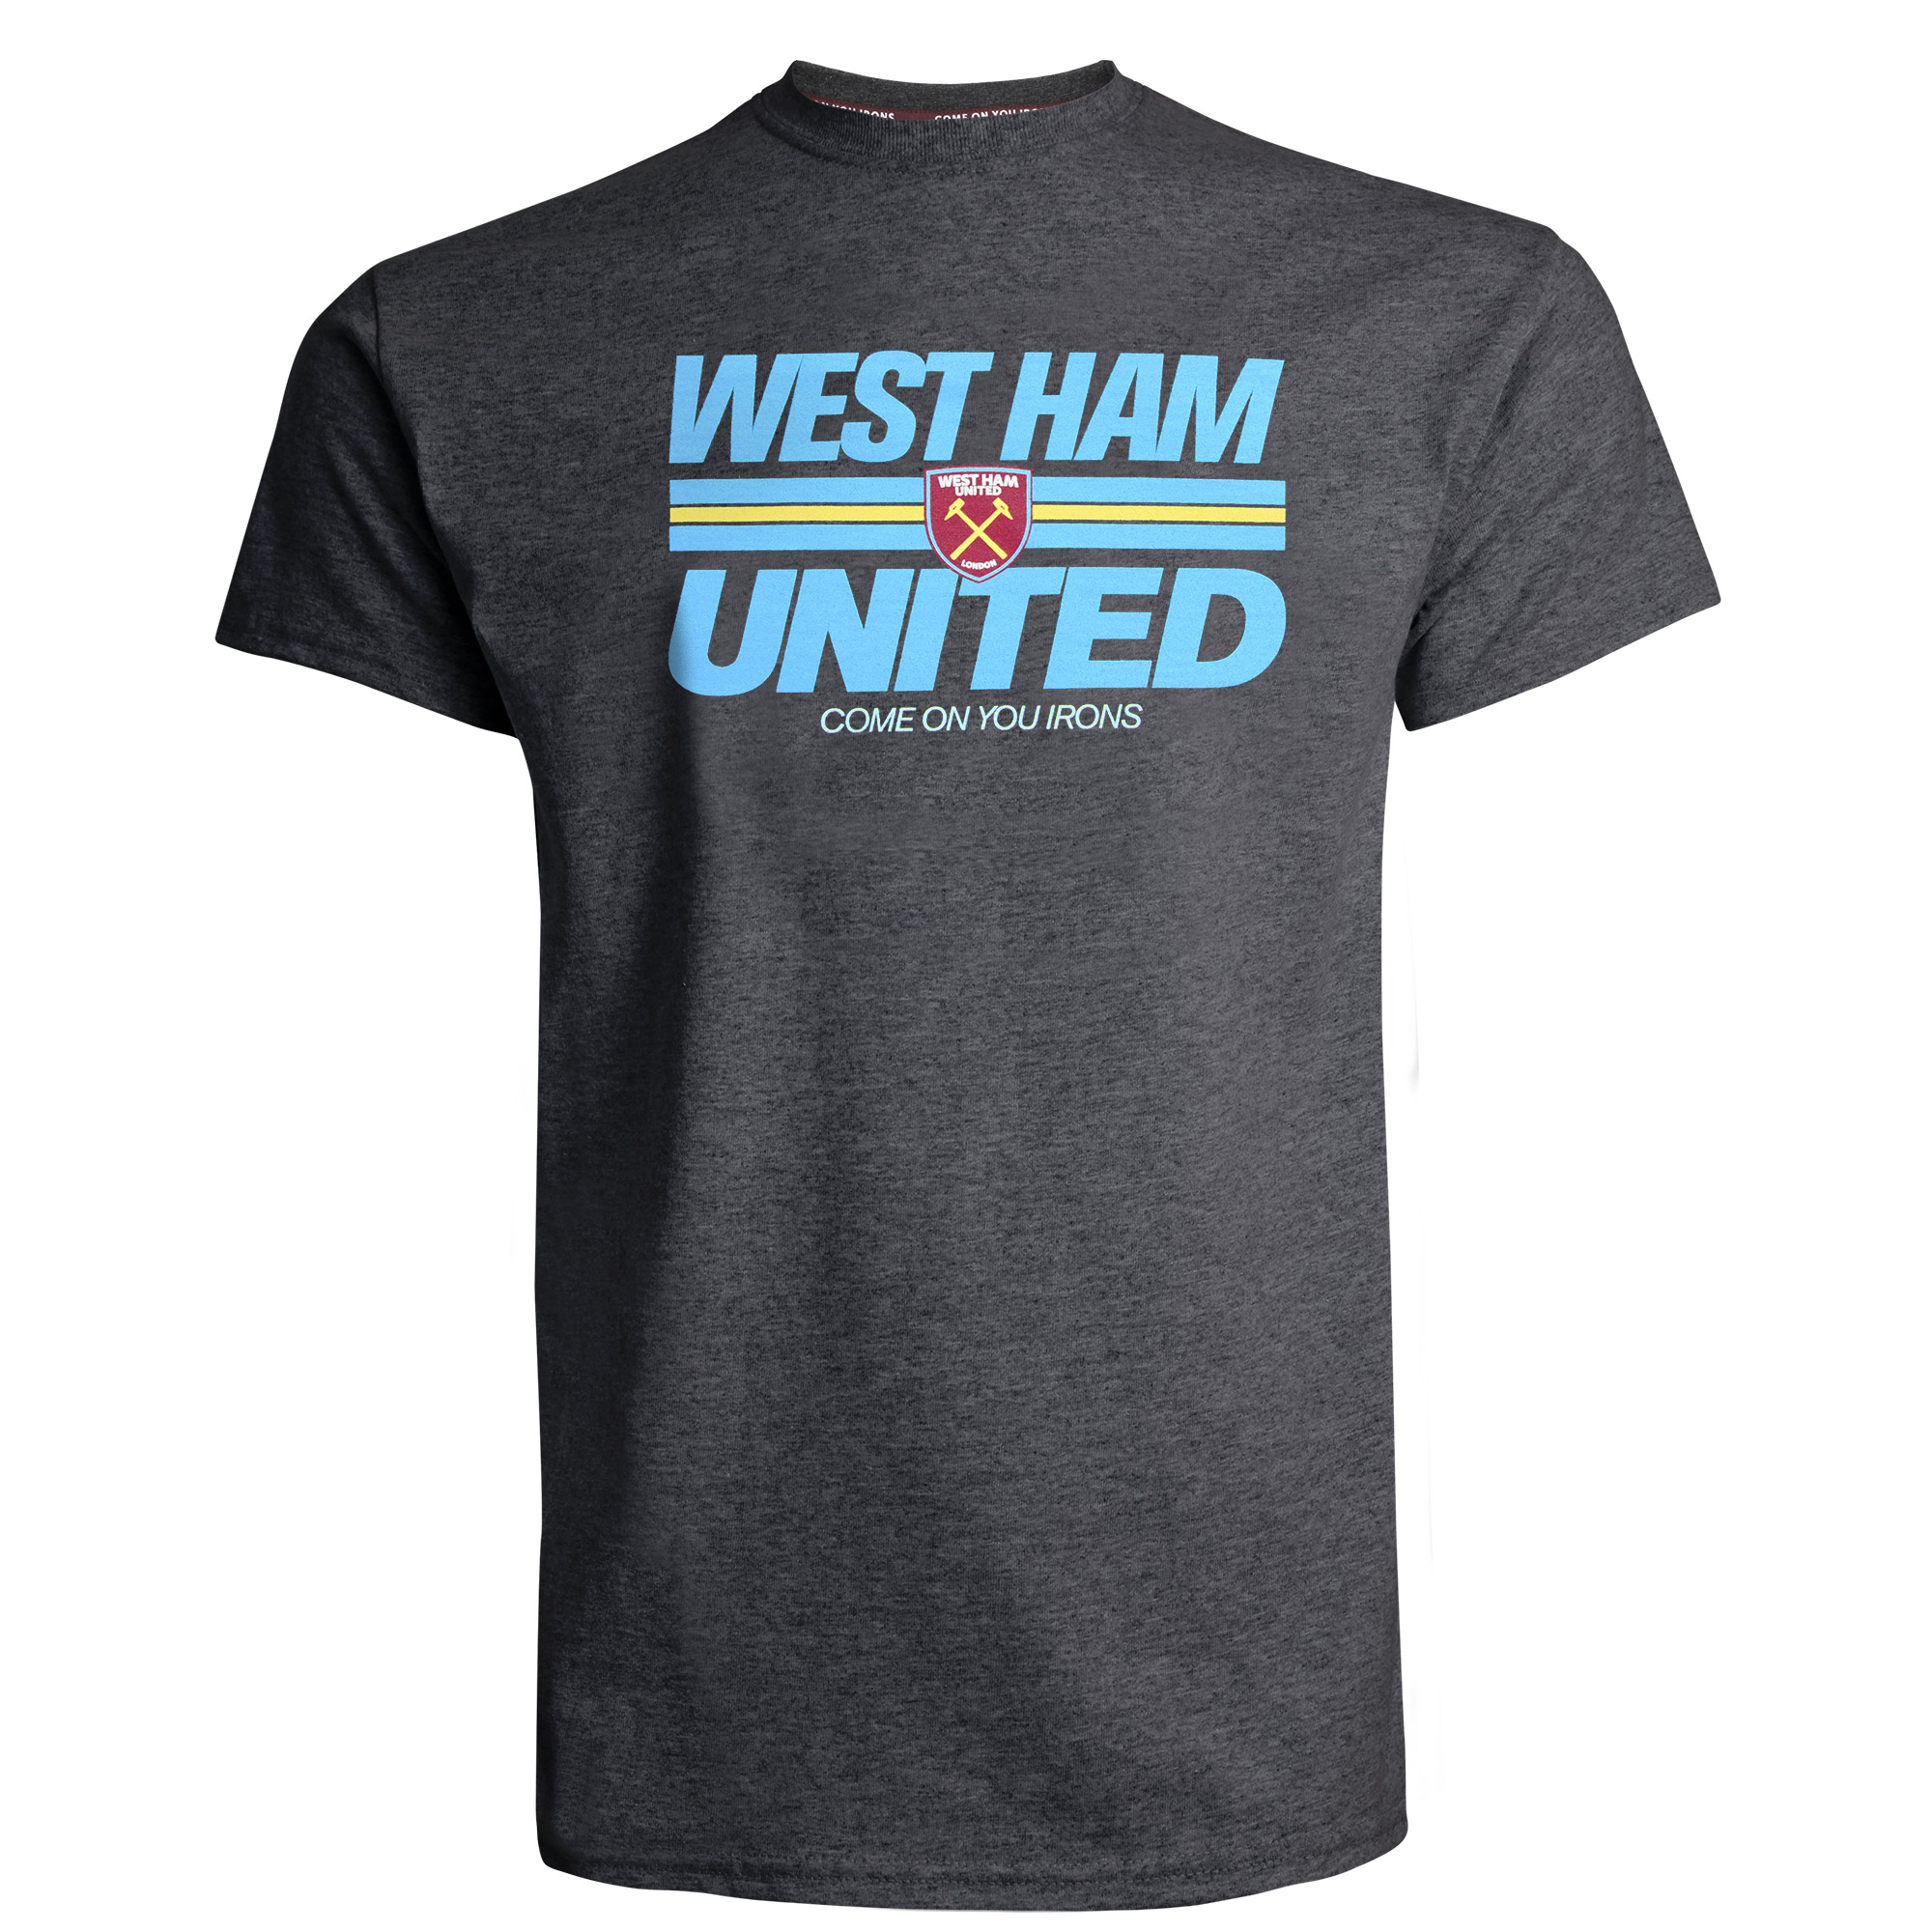 2420 - CHARCOAL WEST HAM UNITED T-SHIRT